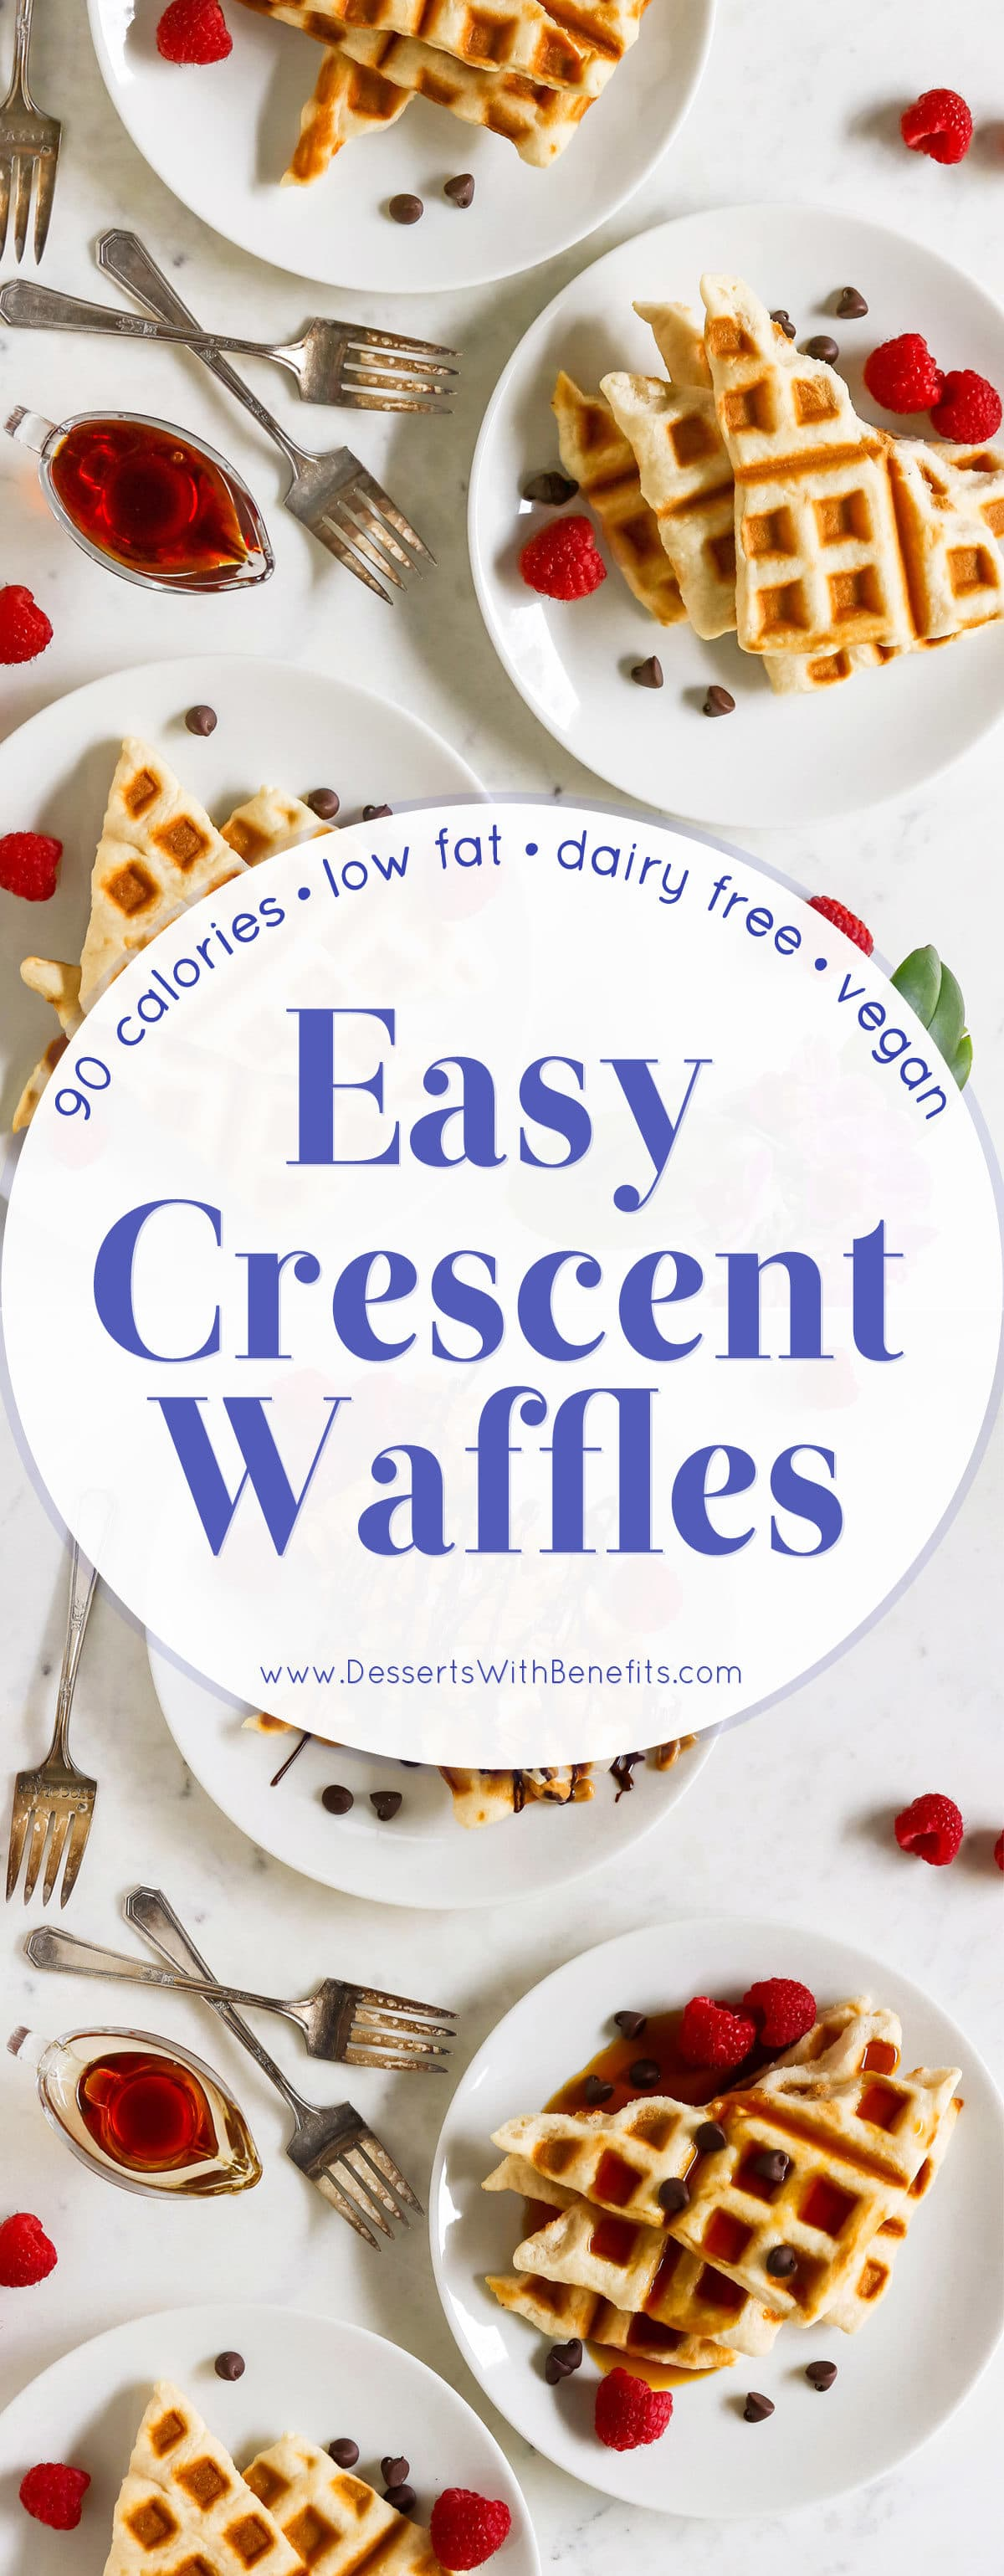 Short on time or don't feel like whipping up waffles from scratch? Take a shortcut and make these SUPER easy Crescent Waffles! Low sugar, low fat, dairy free, and vegan, with just 90 calories each. Like your favorite crescent roll in the form of a waffle -- crispy on the outside, soft and fluffy on the inside! Healthy dessert recipes at the Desserts With Benefits Blog (www.DessertsWithBenefits.com)